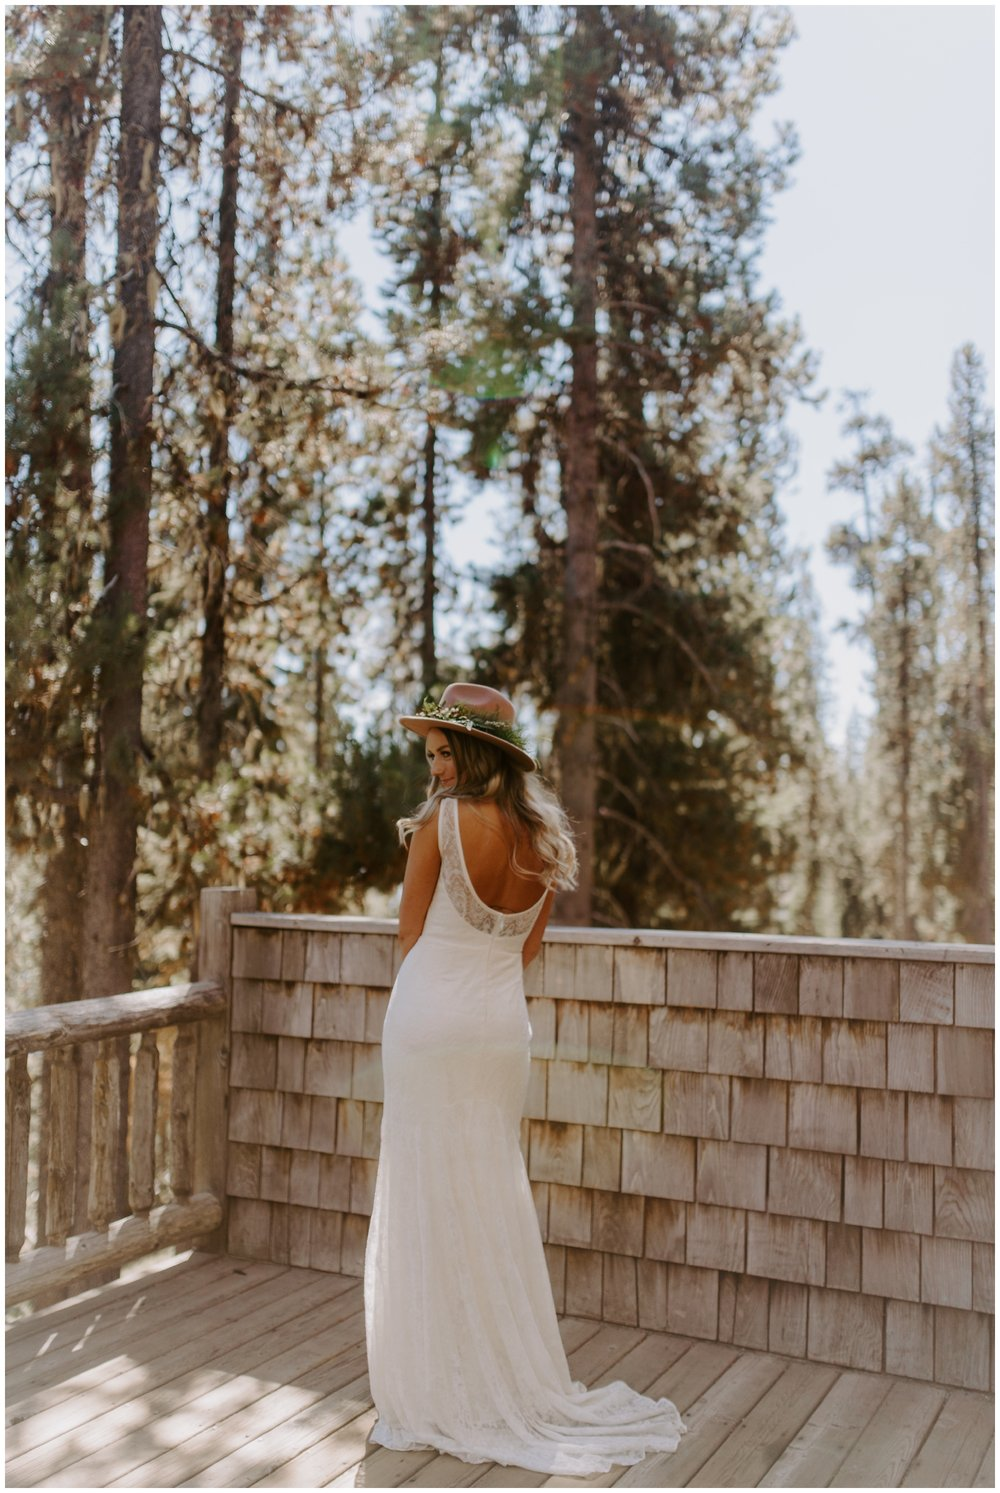 Bend Boho Campsite Wedding Eastern Oregon - Jessica Heron Images_0017.jpg